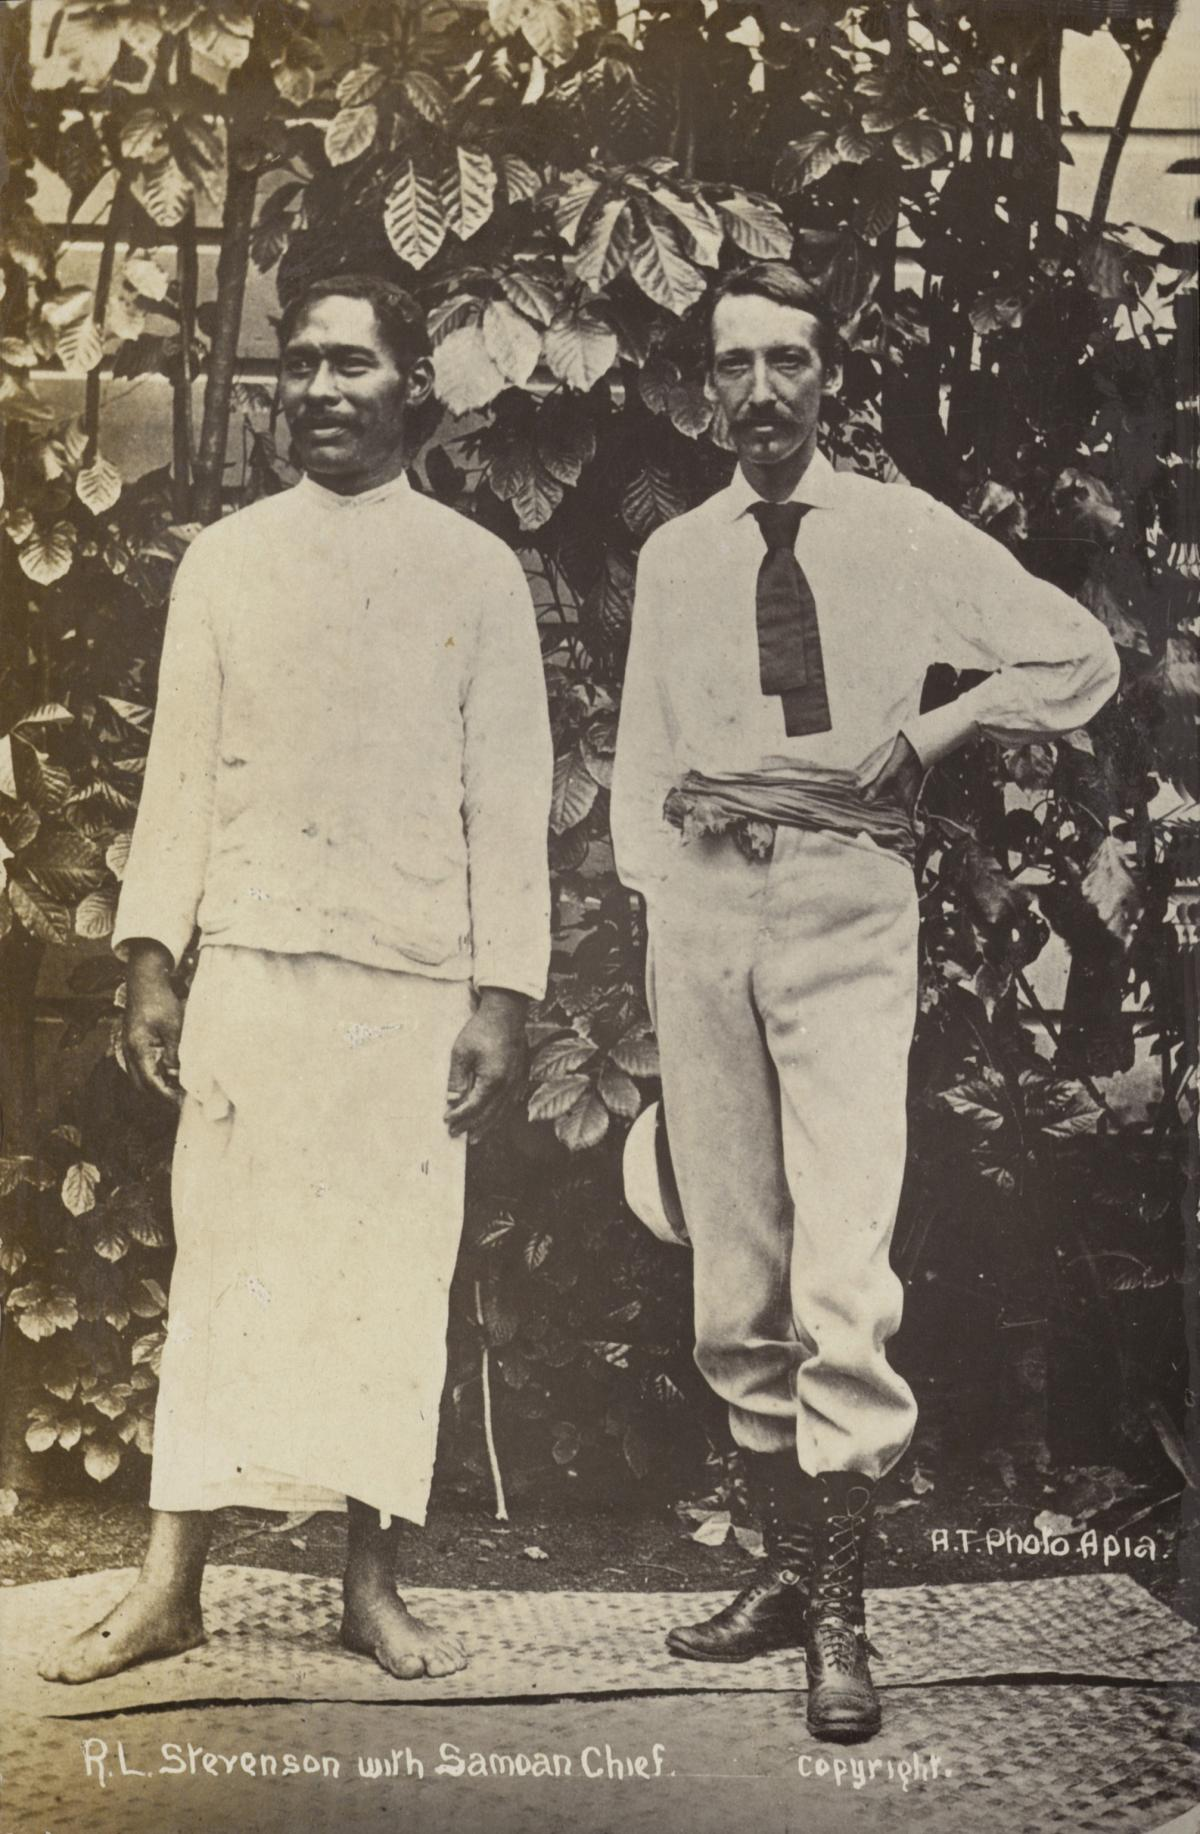 Black and white photo of Stevenson in a white shirt and hand on his hip, standing next to a Samoan chief, who is dressed in traditional white Samoan clothing